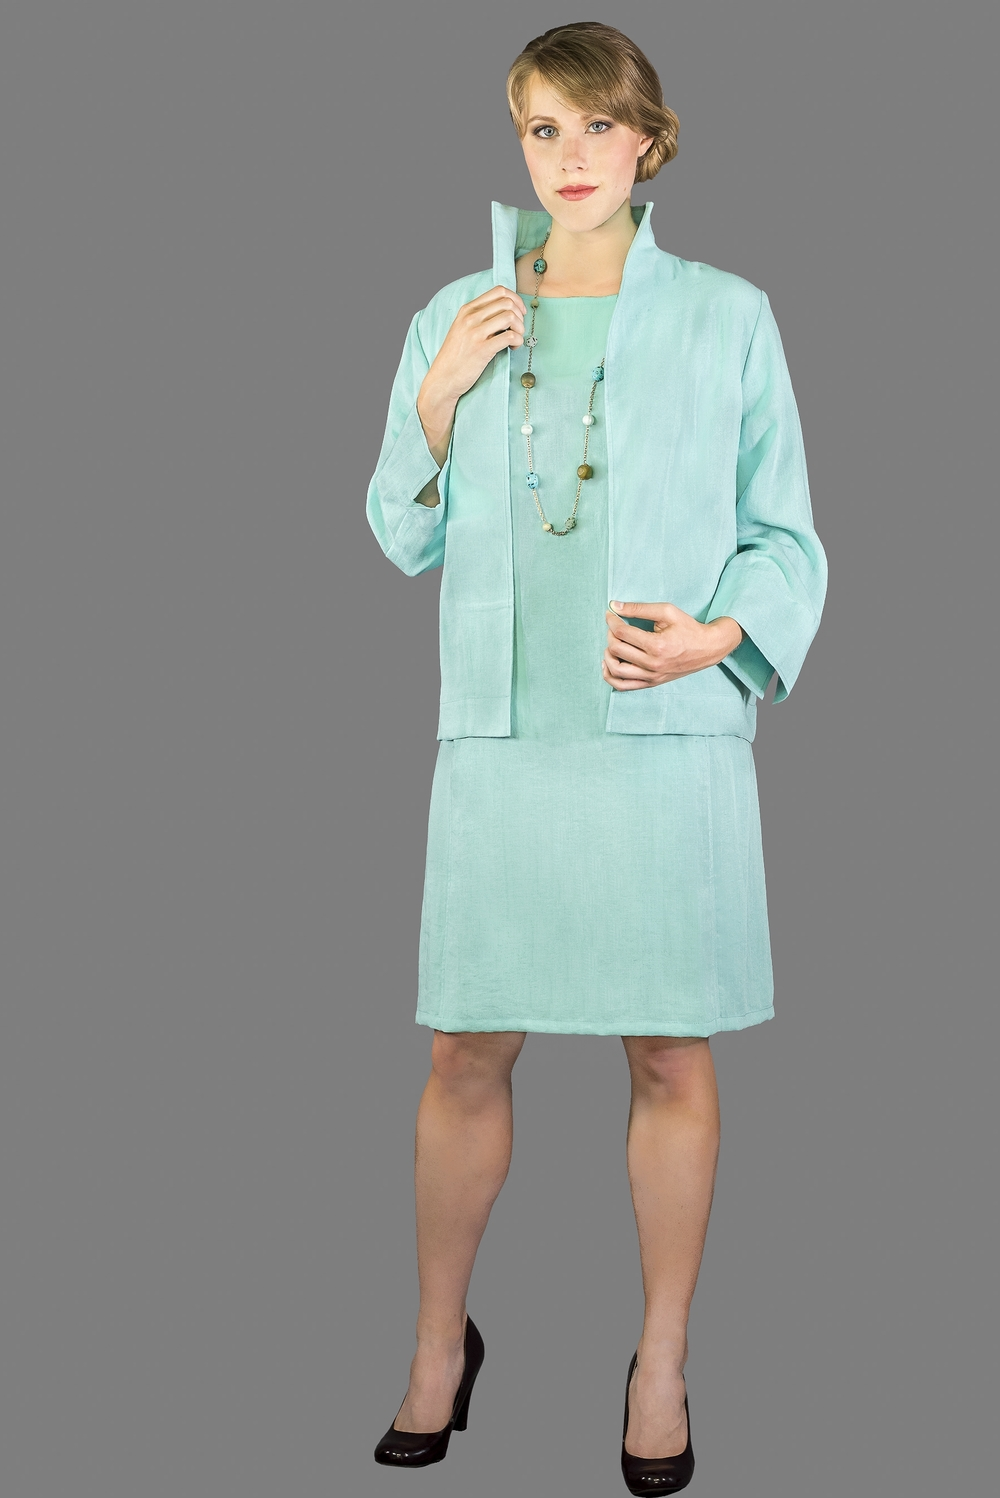 AA198 - Pamela Jacket (Shown with AAD199)    CL3983 - Spa